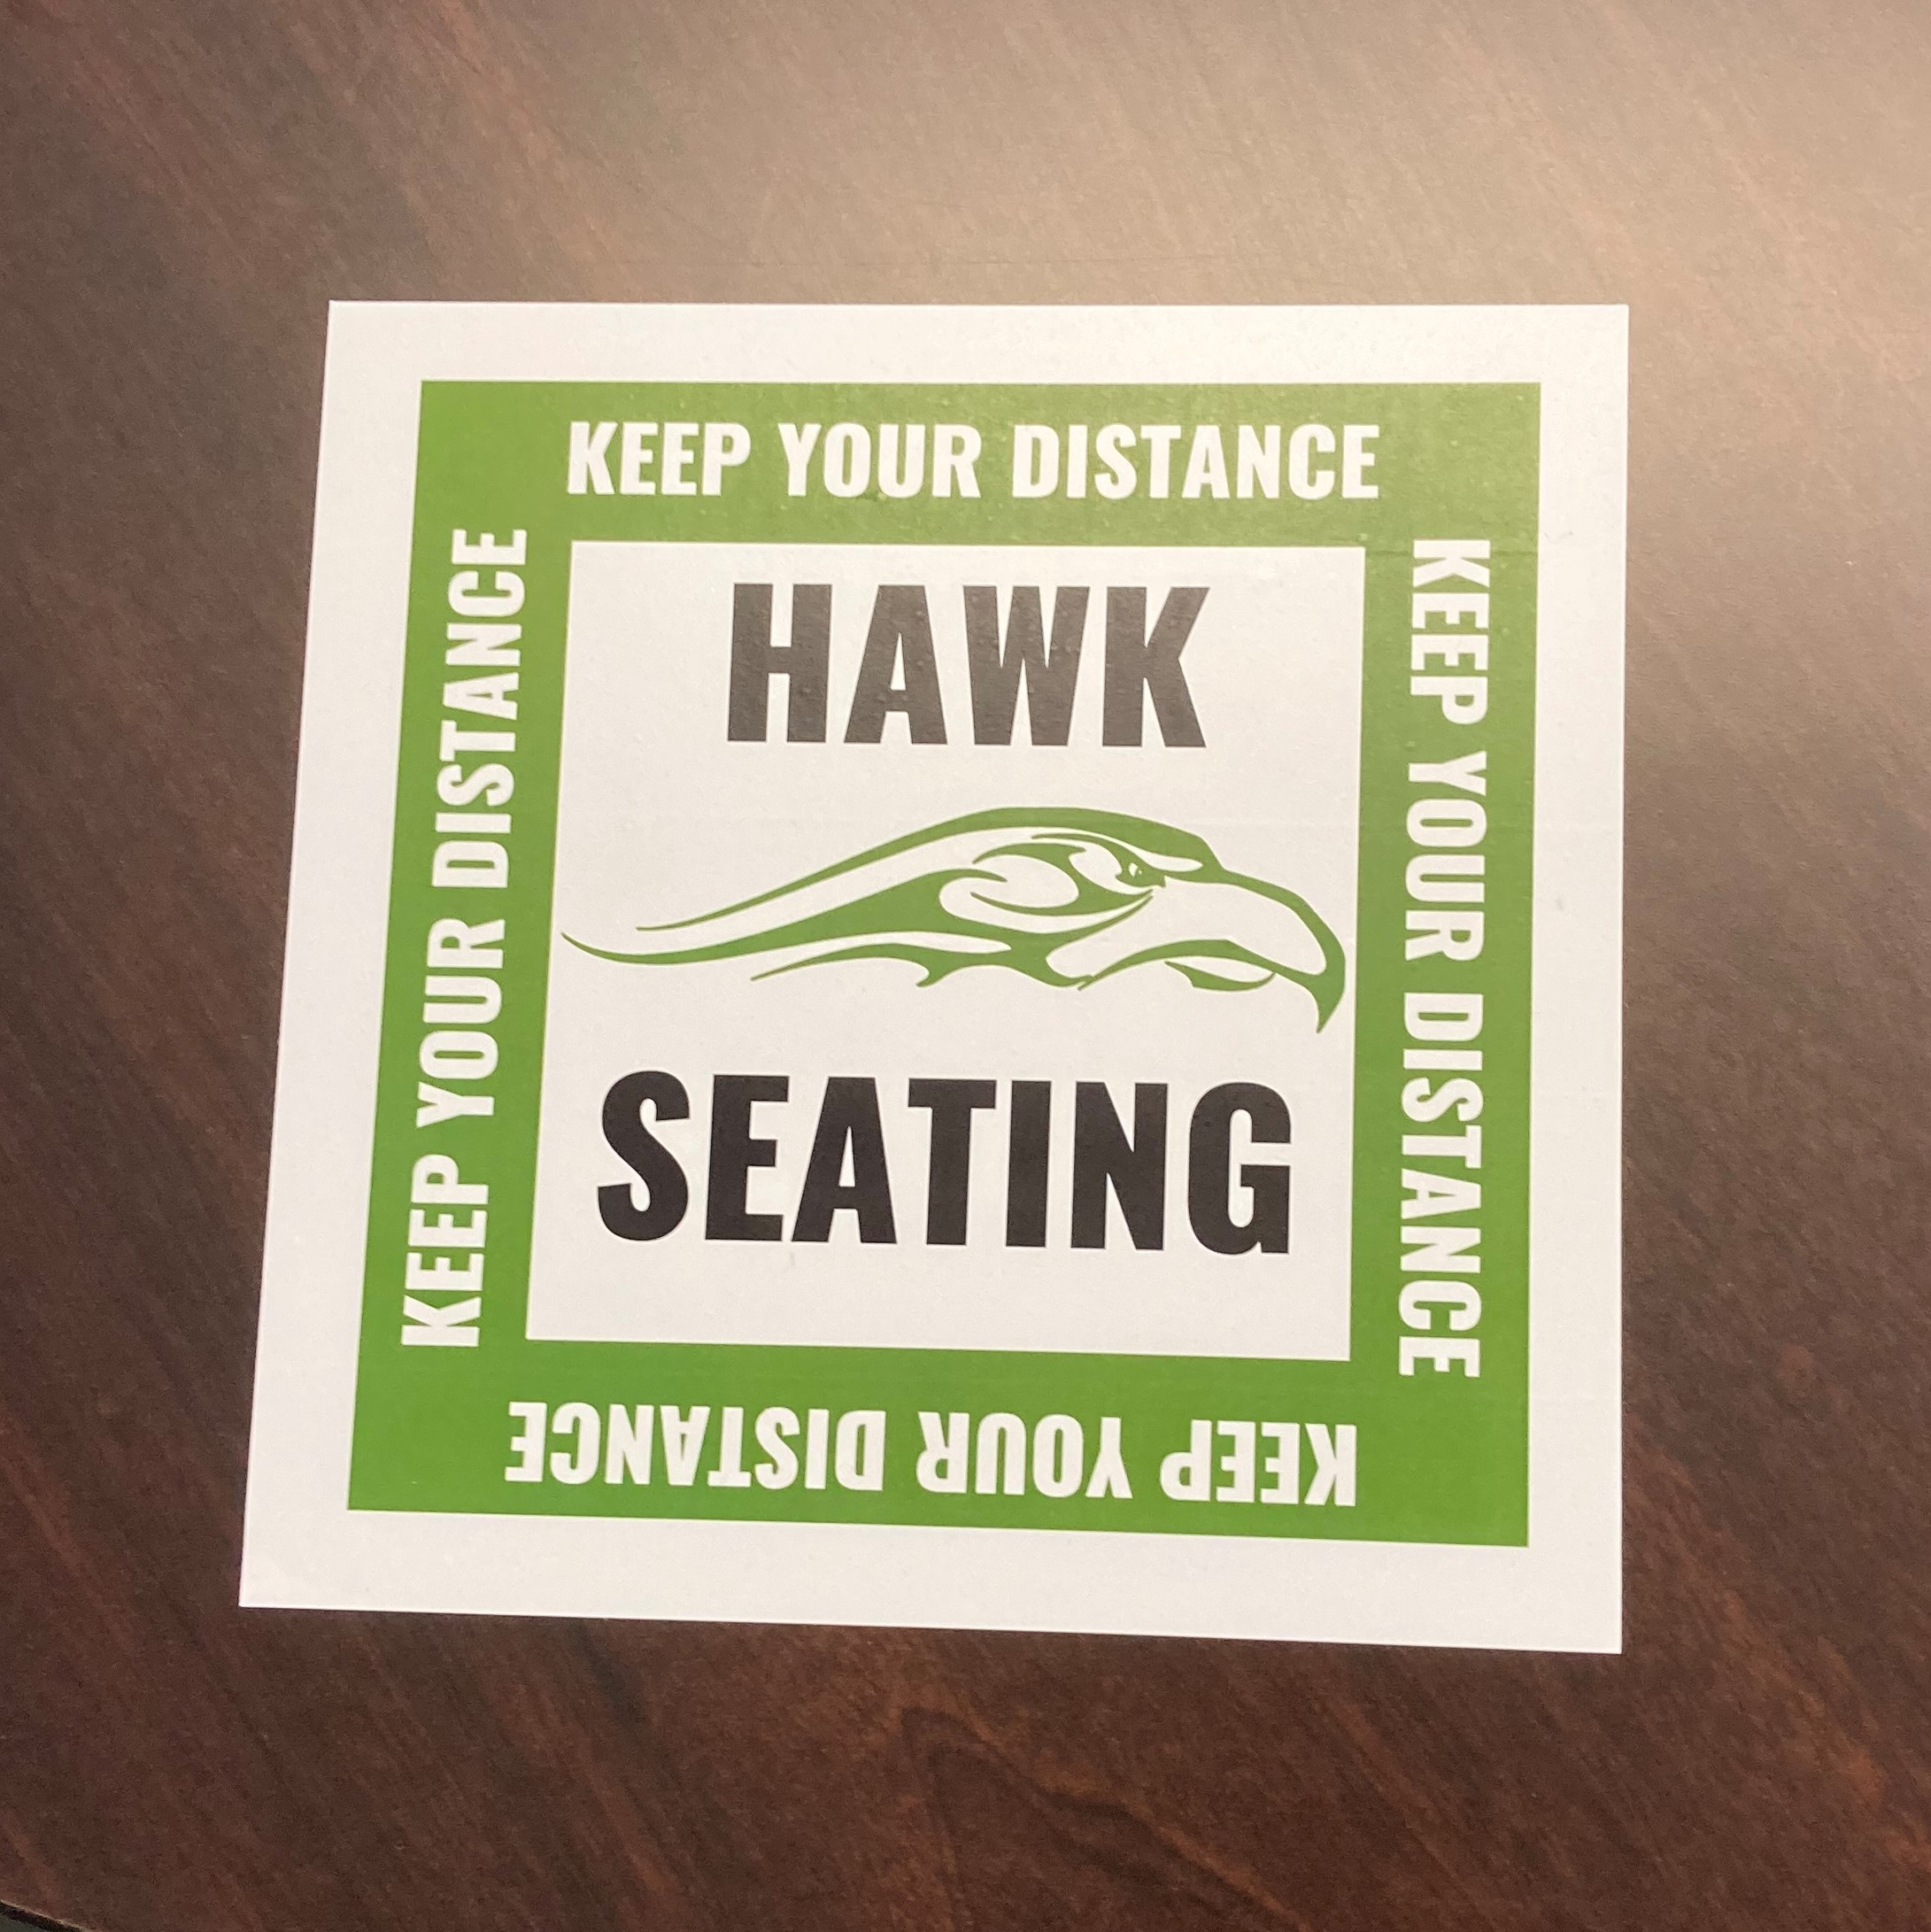 Hawk Seating - Keep Your Distance